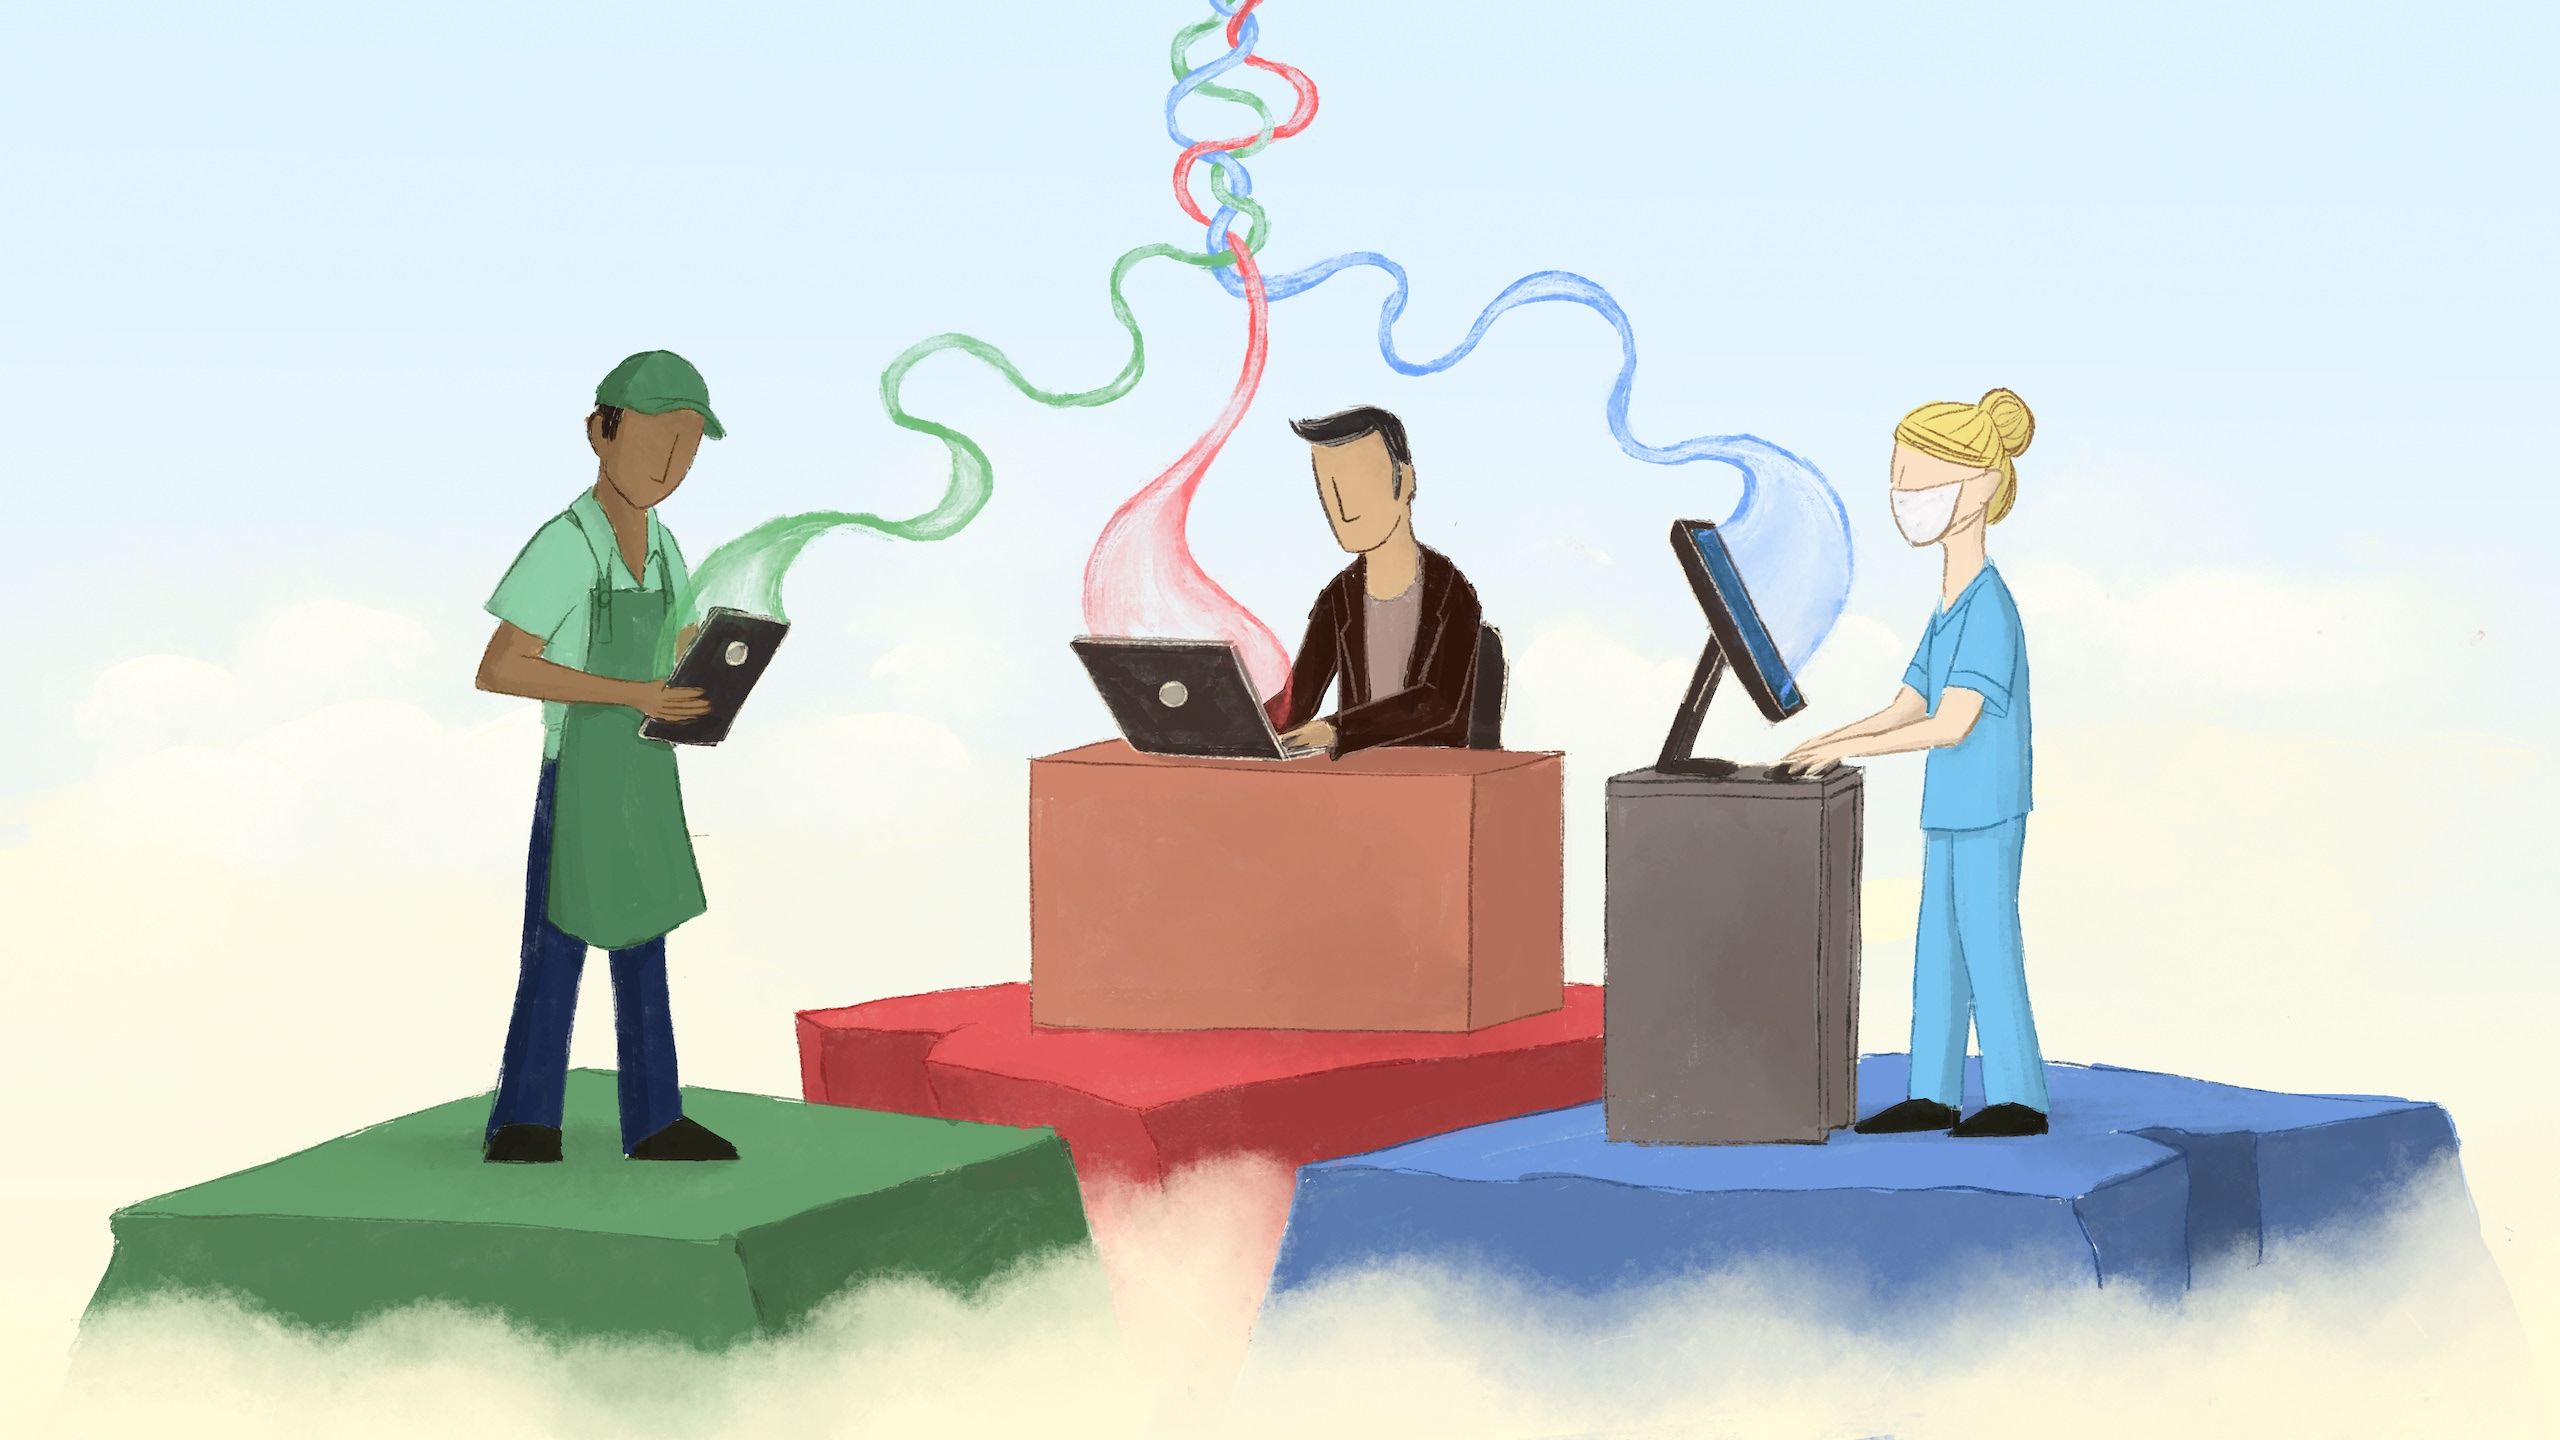 Illustration of three people on separate platforms using technology. L to R: grocery worker, office worker, healthcare worker